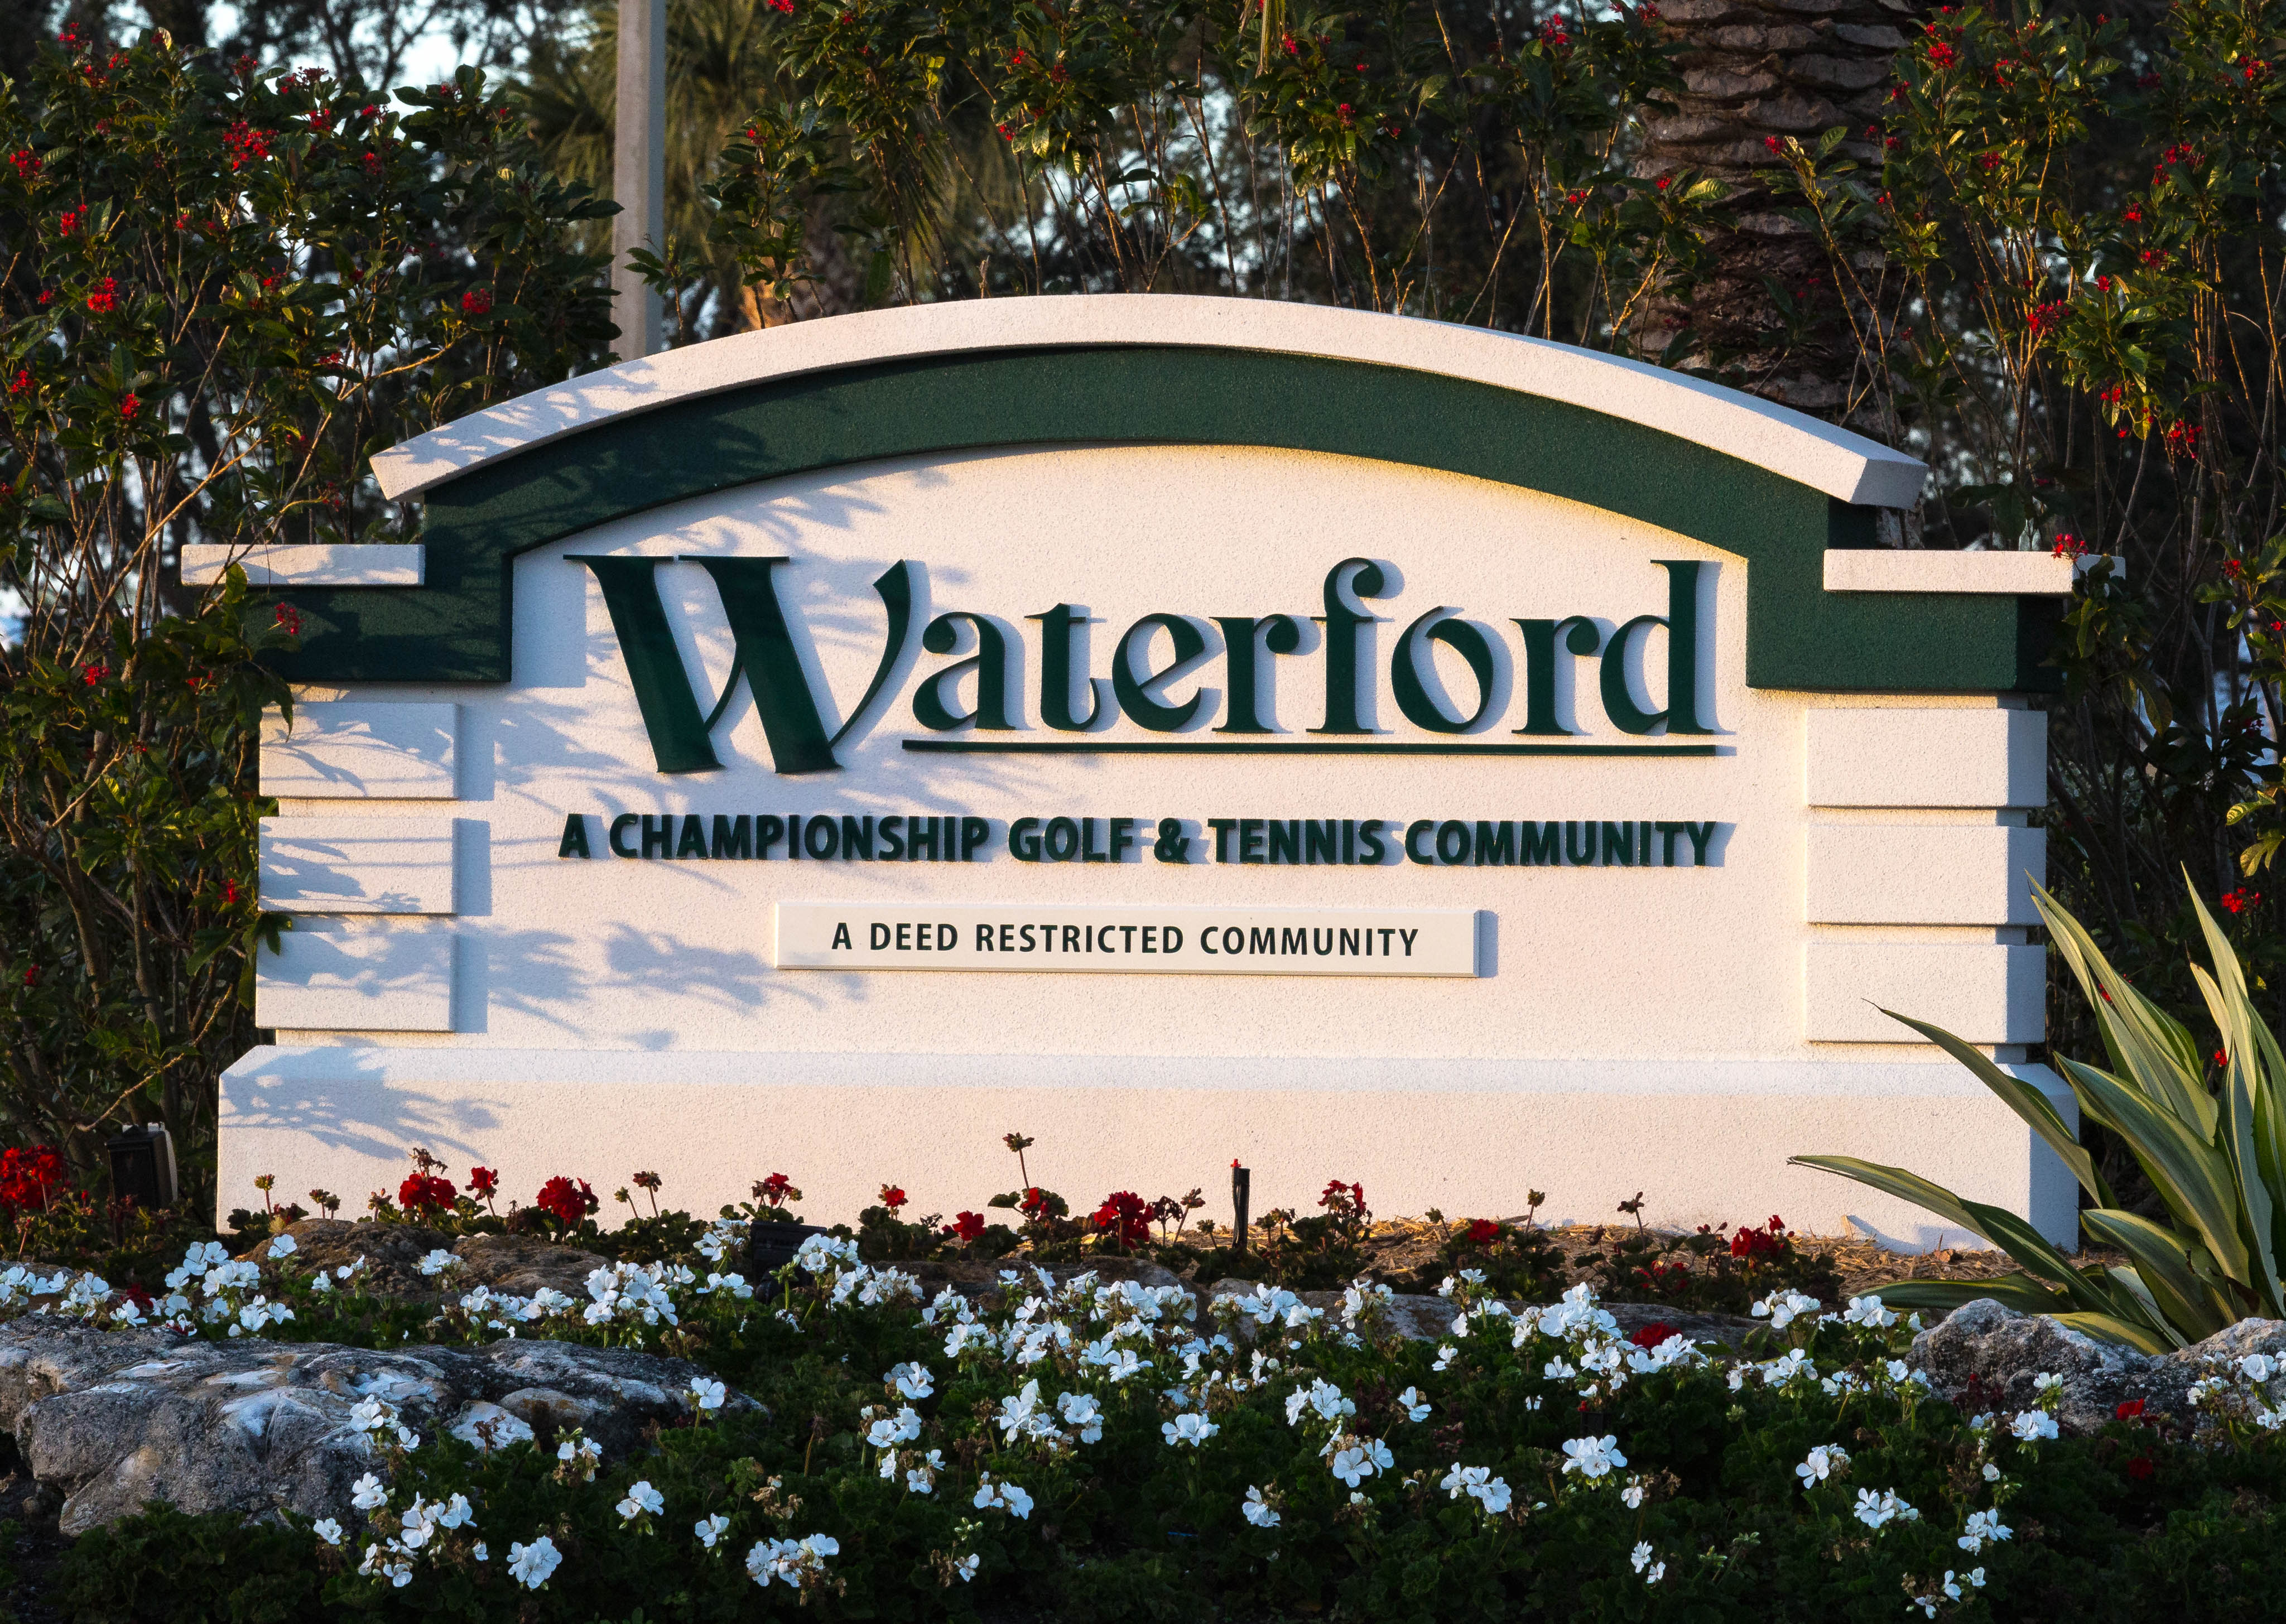 Waterford sign